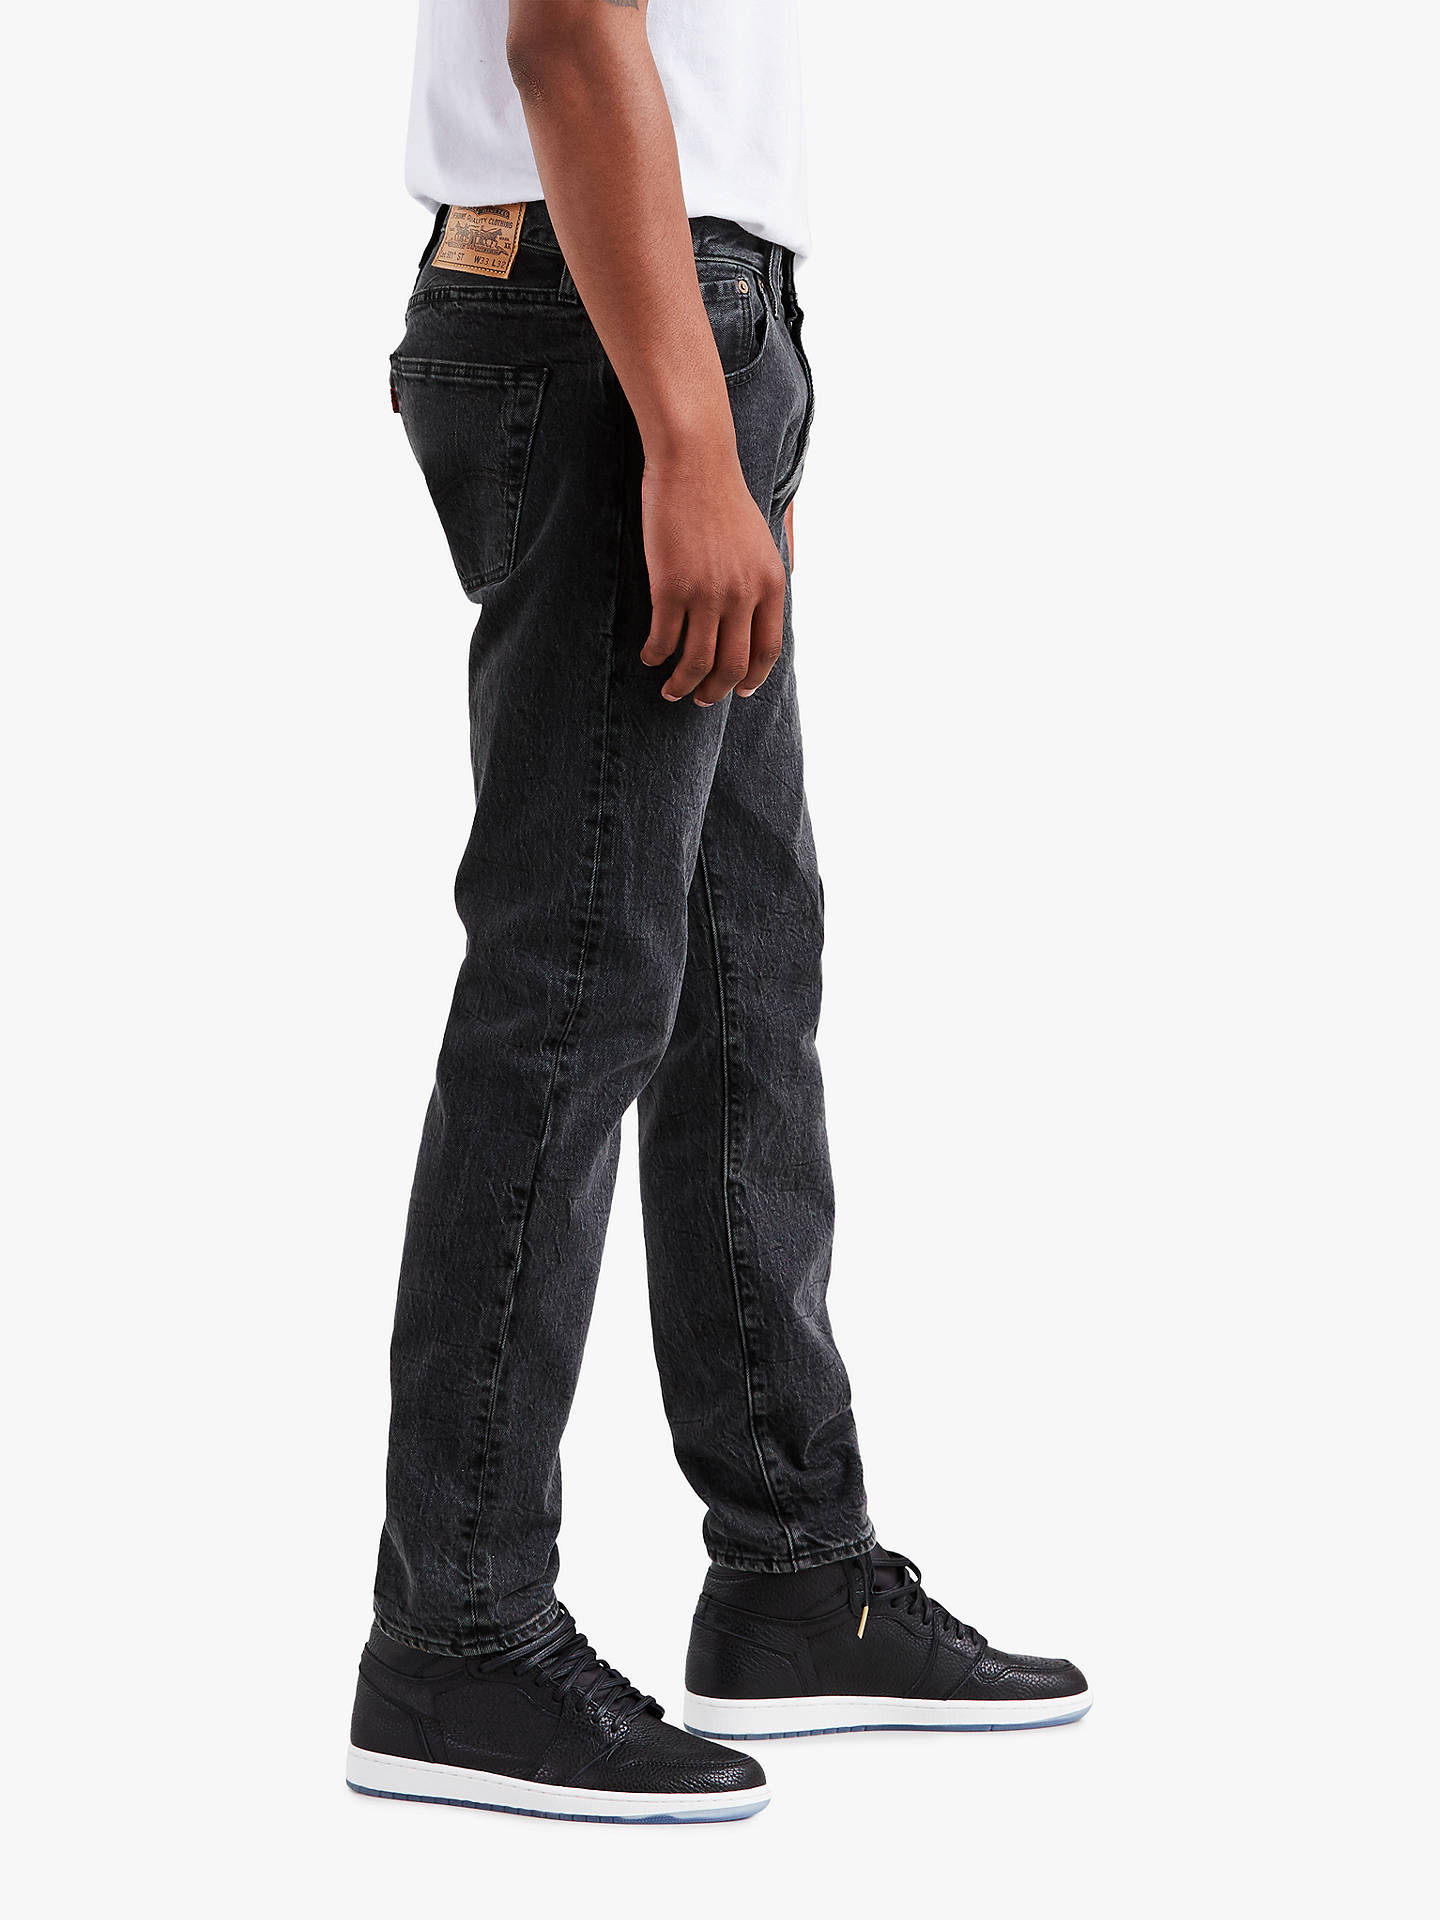 d84b91fe ... Buy Levi's x Justin Timberlake 501 Slim Tapered Fit Jeans, Washed  Black, 30S Online ...